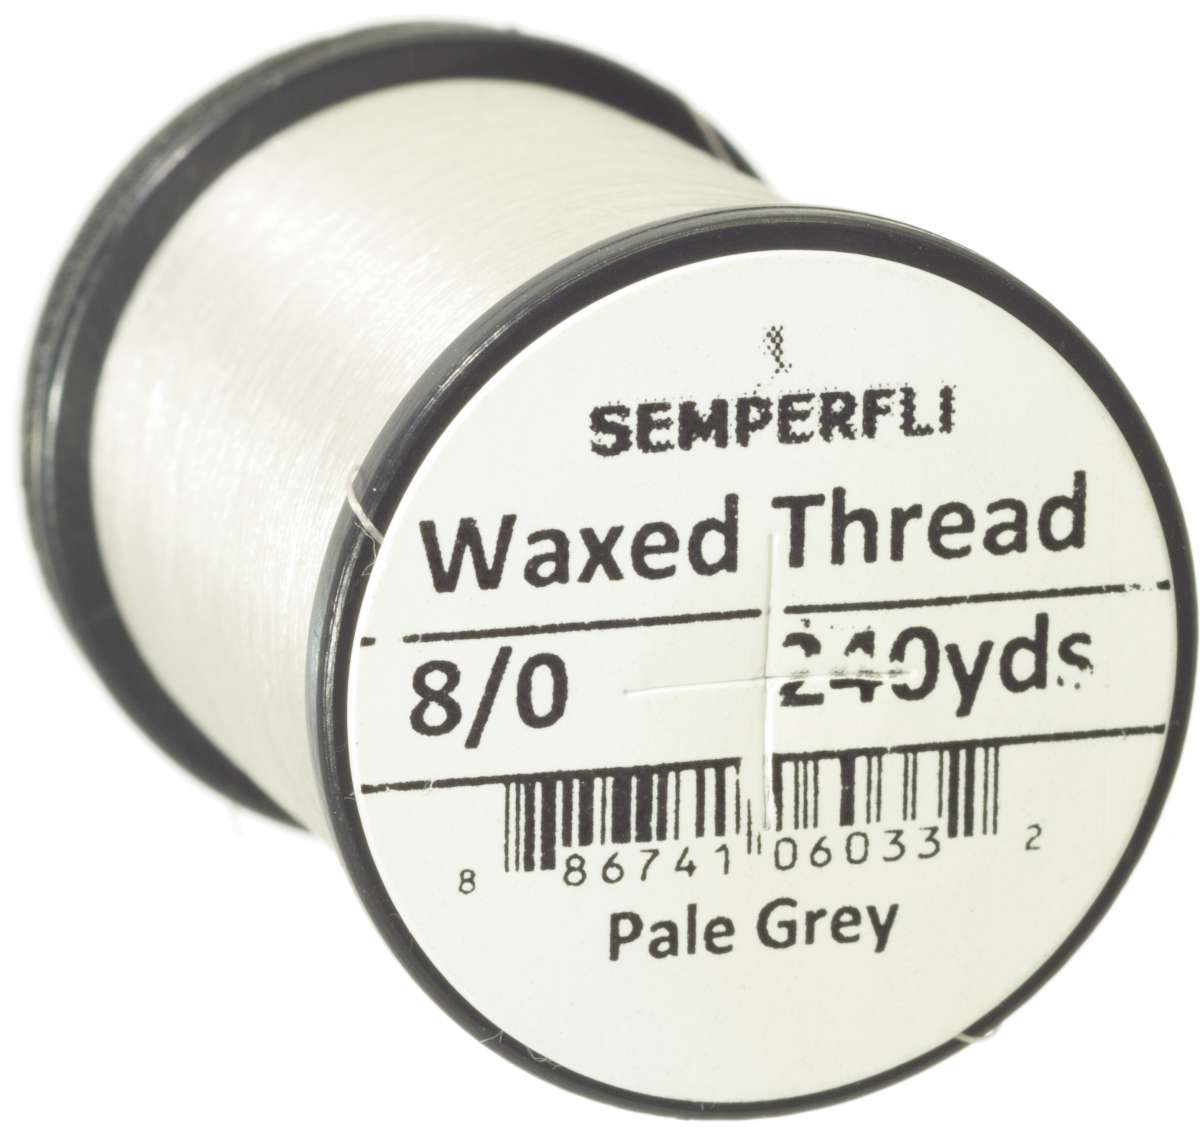 8/0 Classic Waxed Thread Pale Grey Sem-0400-1992